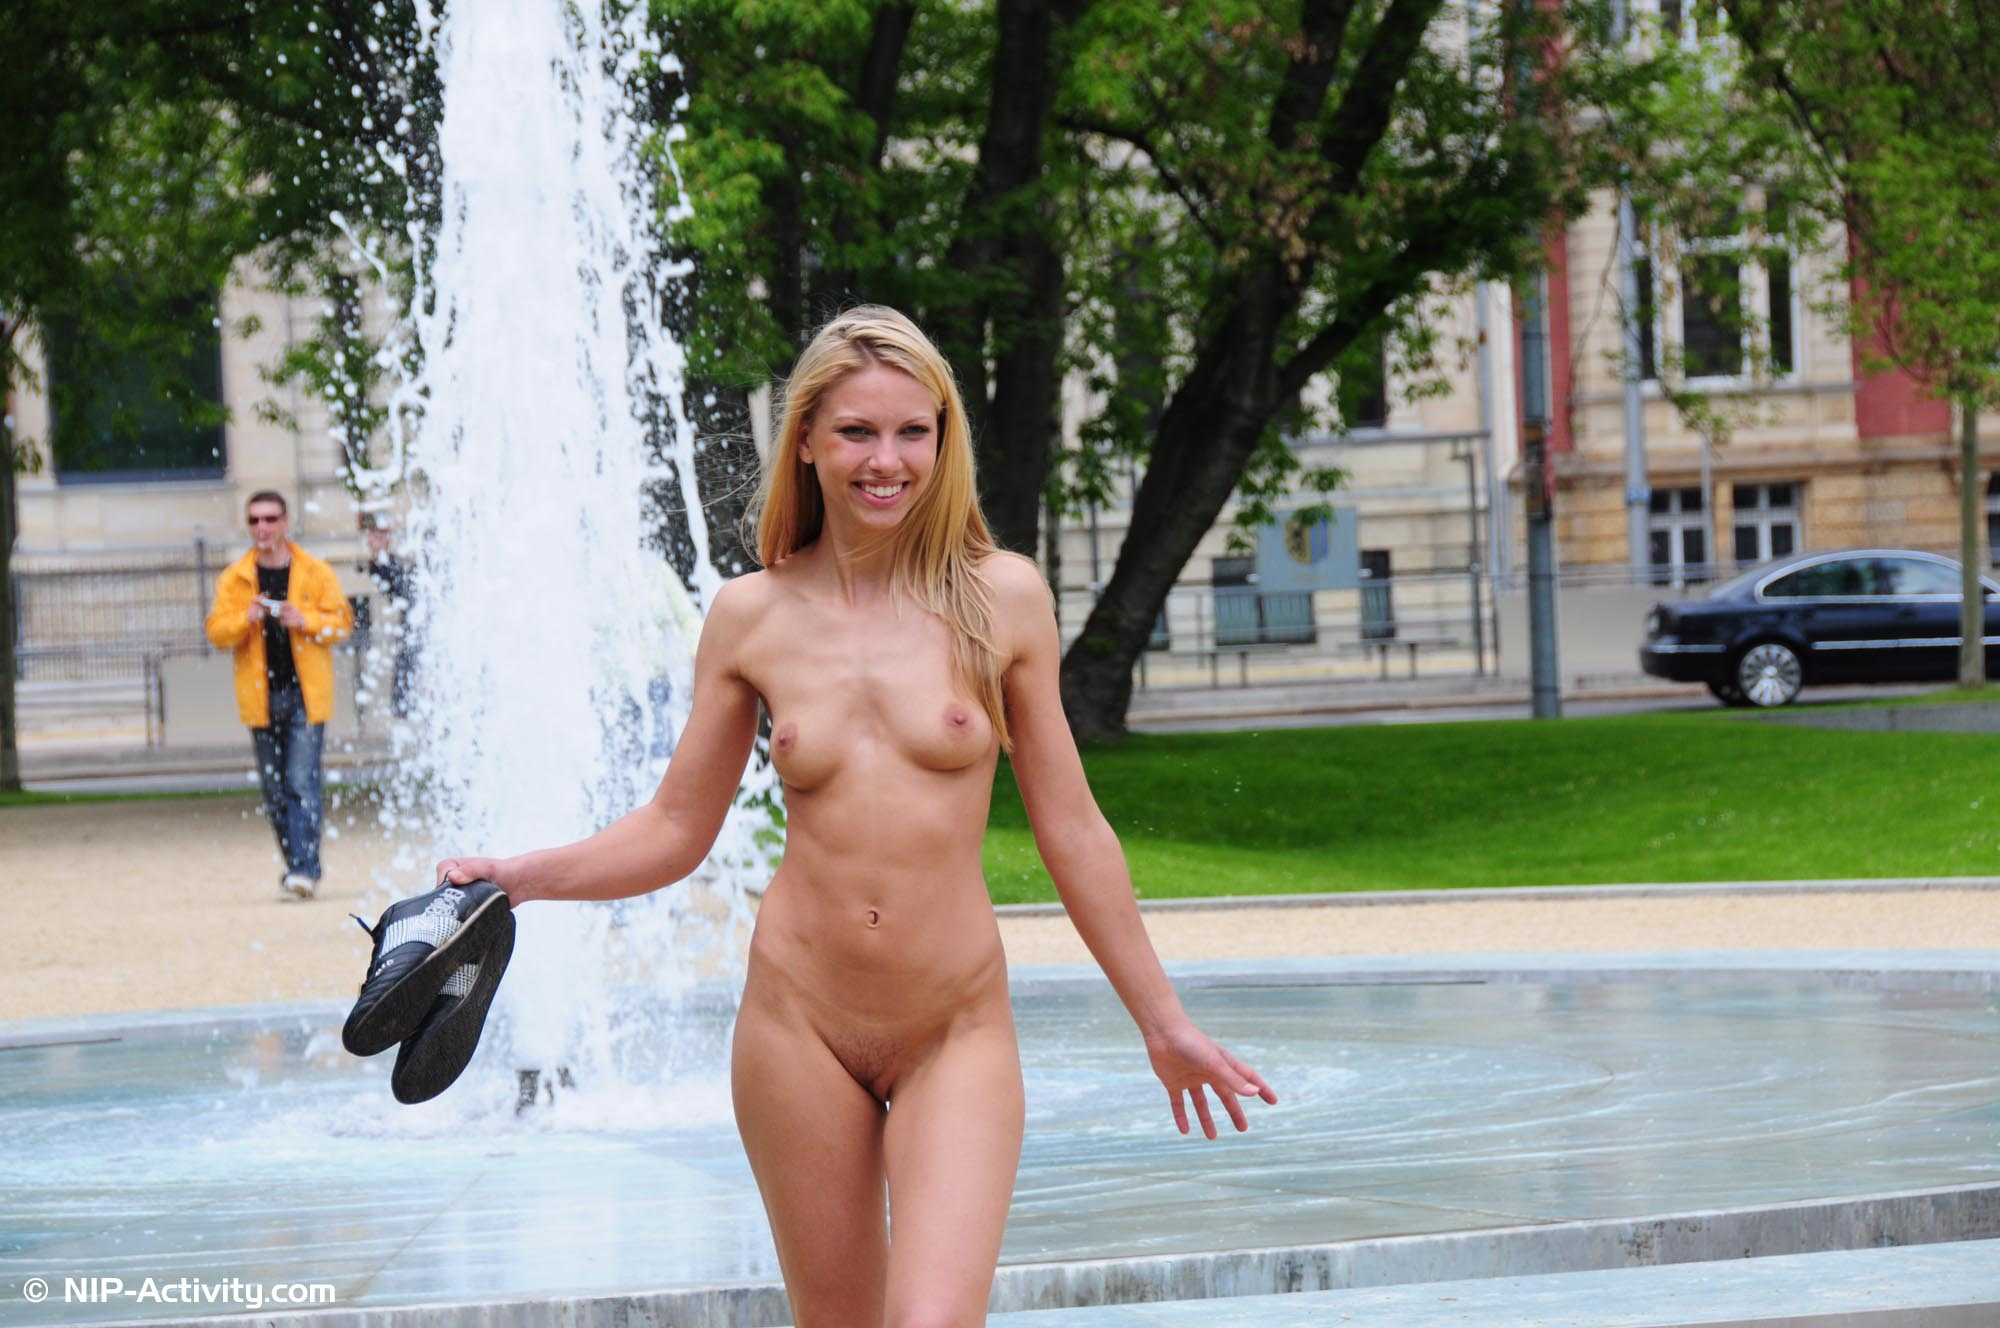 Public nudity images